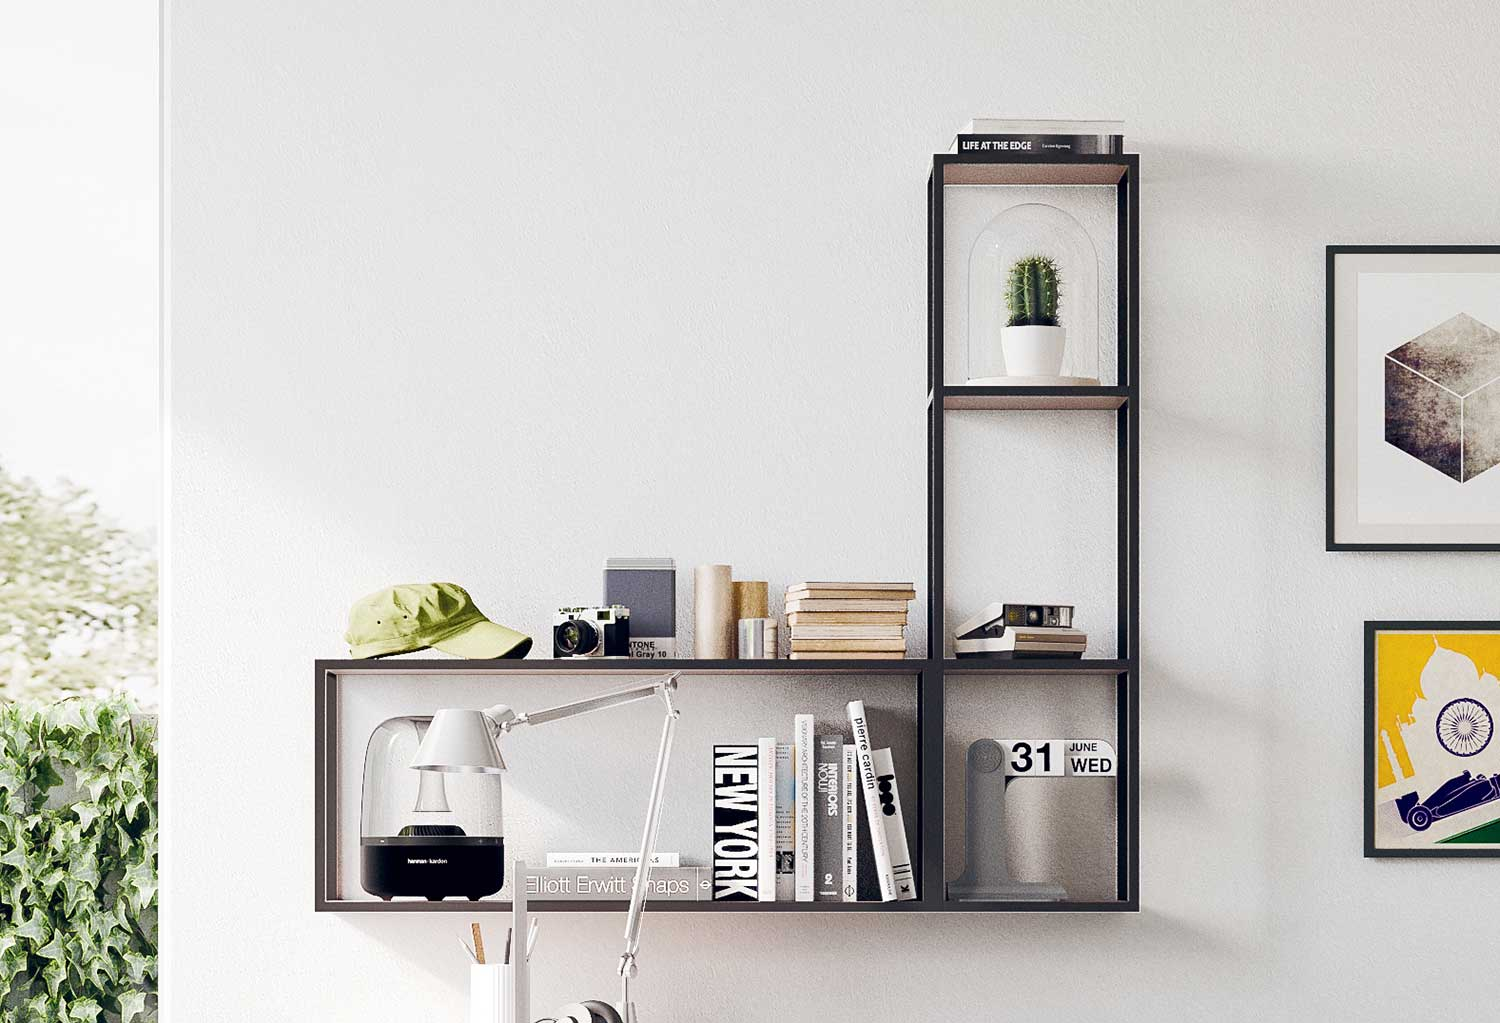 Kios is an industrial style metal frame shelving with a tough look perfect for teenagers' bedrooms